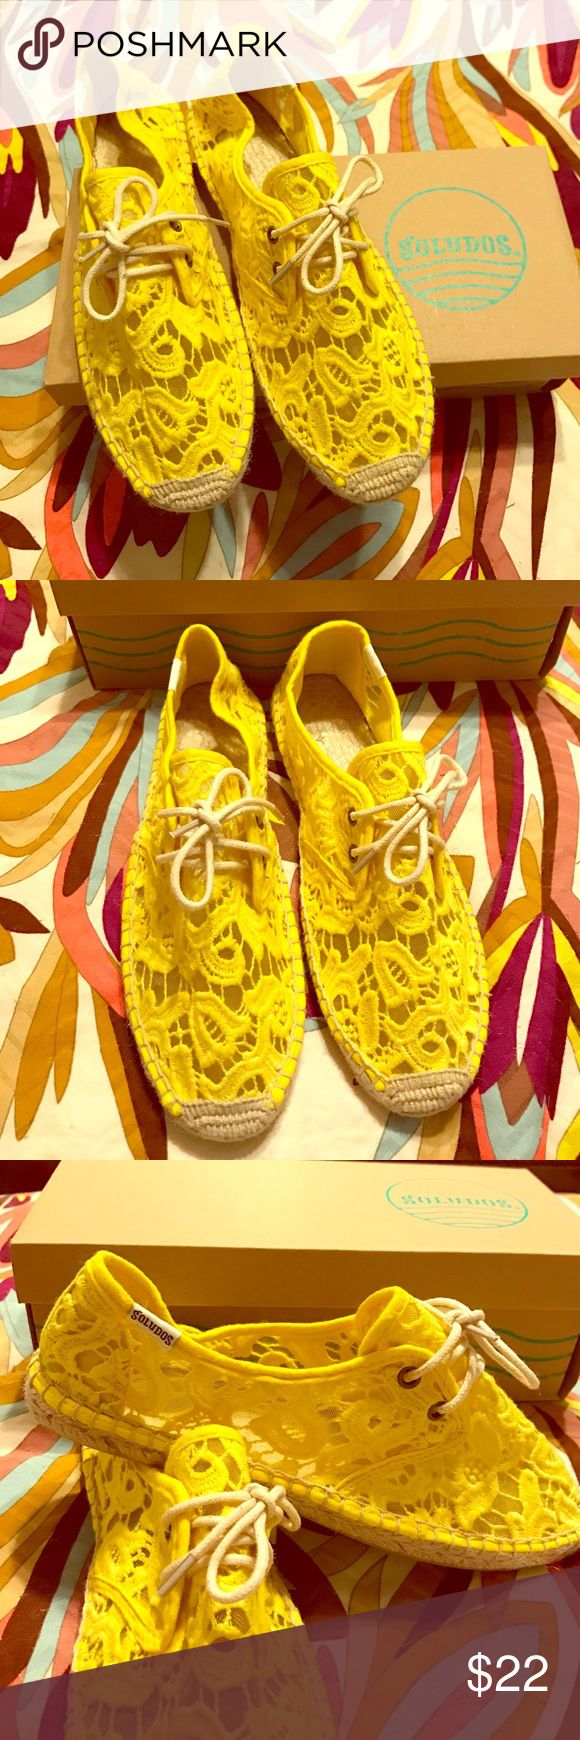 Cute Yellow Lace Soludos Espadrilles- Size 8 NEW Cute Yellow Lacy Soludos Lace Up Flat Espadrilles- Size 8 - NEW IN BOX - Perfect for Spring/Summer and the Beach! Soludos Shoes Espadrilles